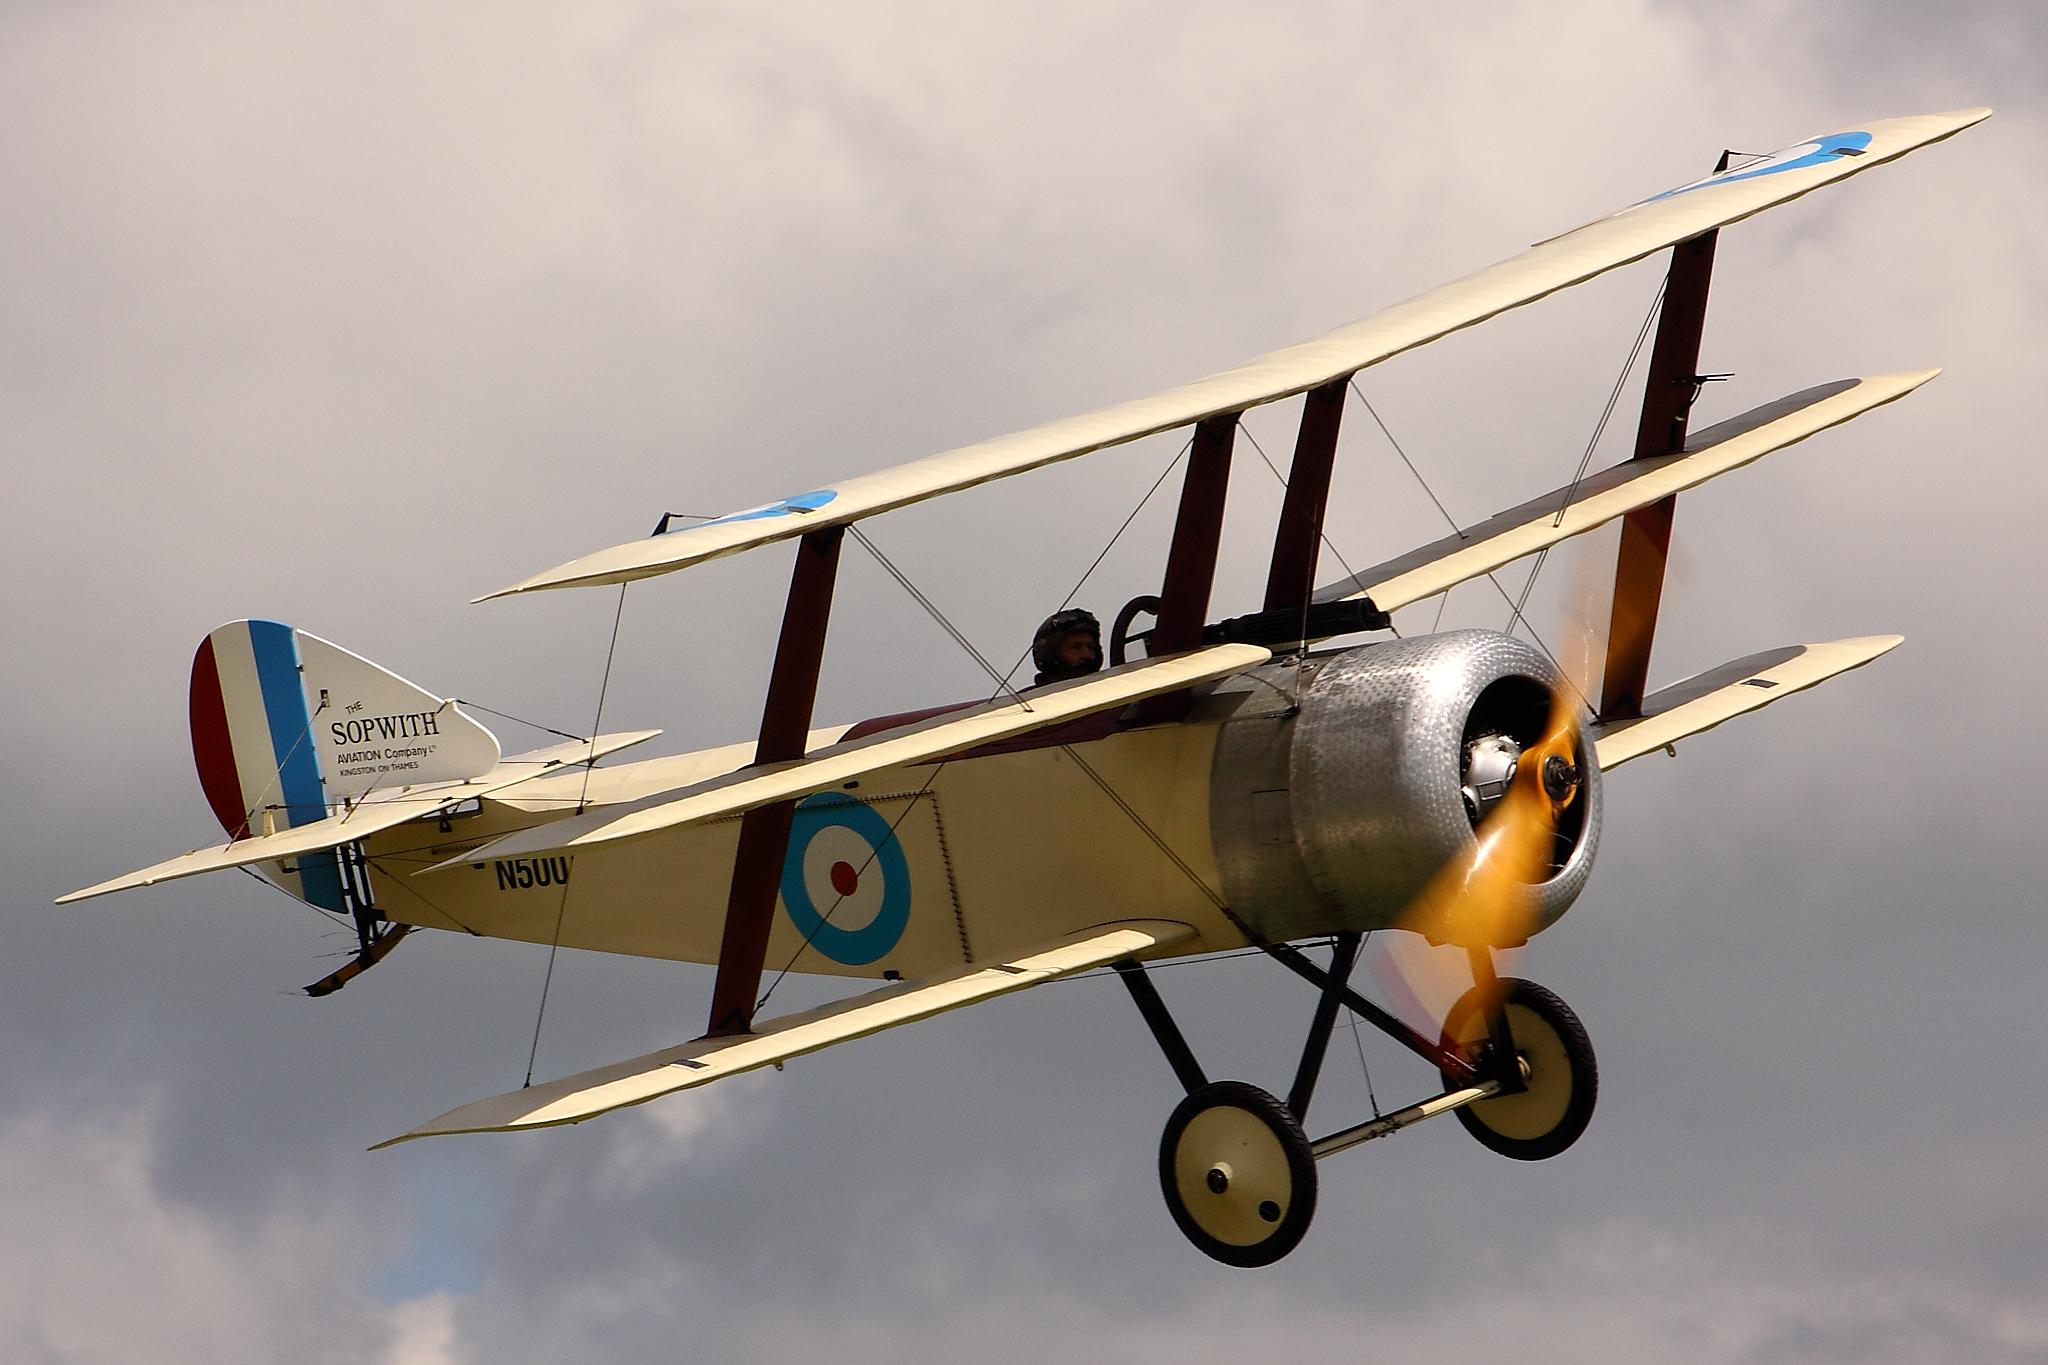 Sopwith-Triplane-Flying.jpg